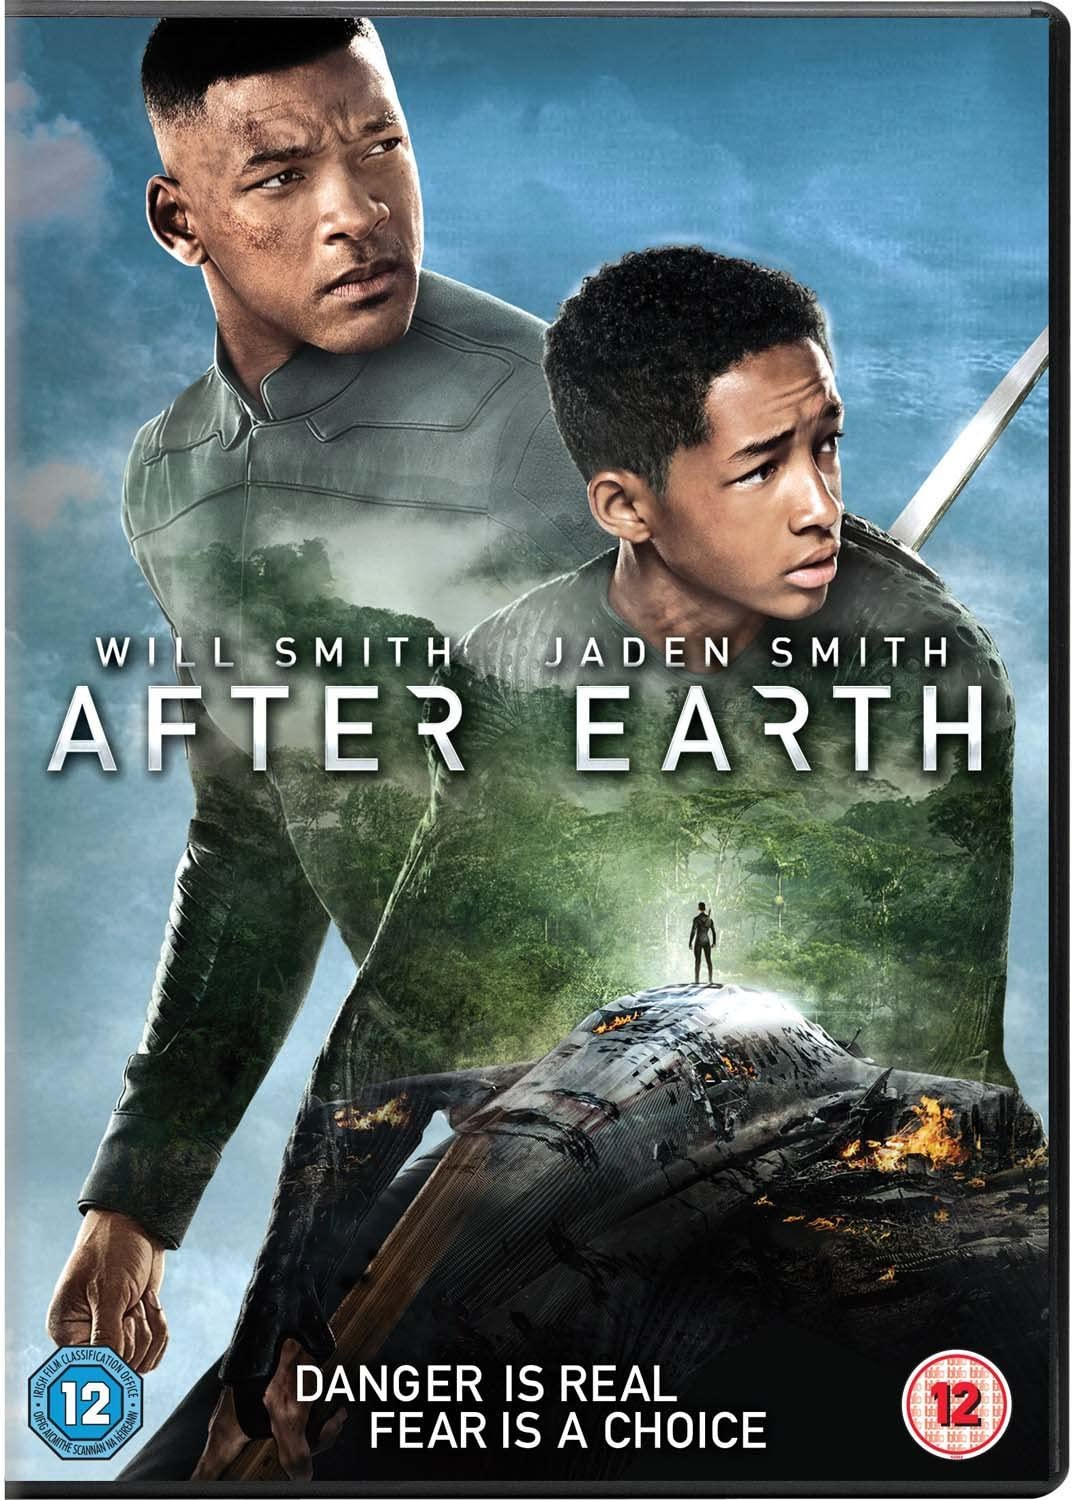 After Earth Dvd 2013 Amazon Co Uk Will Smith Jaden Smith Isabelle Fuhrman M Night Shyamalan Will Smith Jaden Smith Dvd Blu Ray